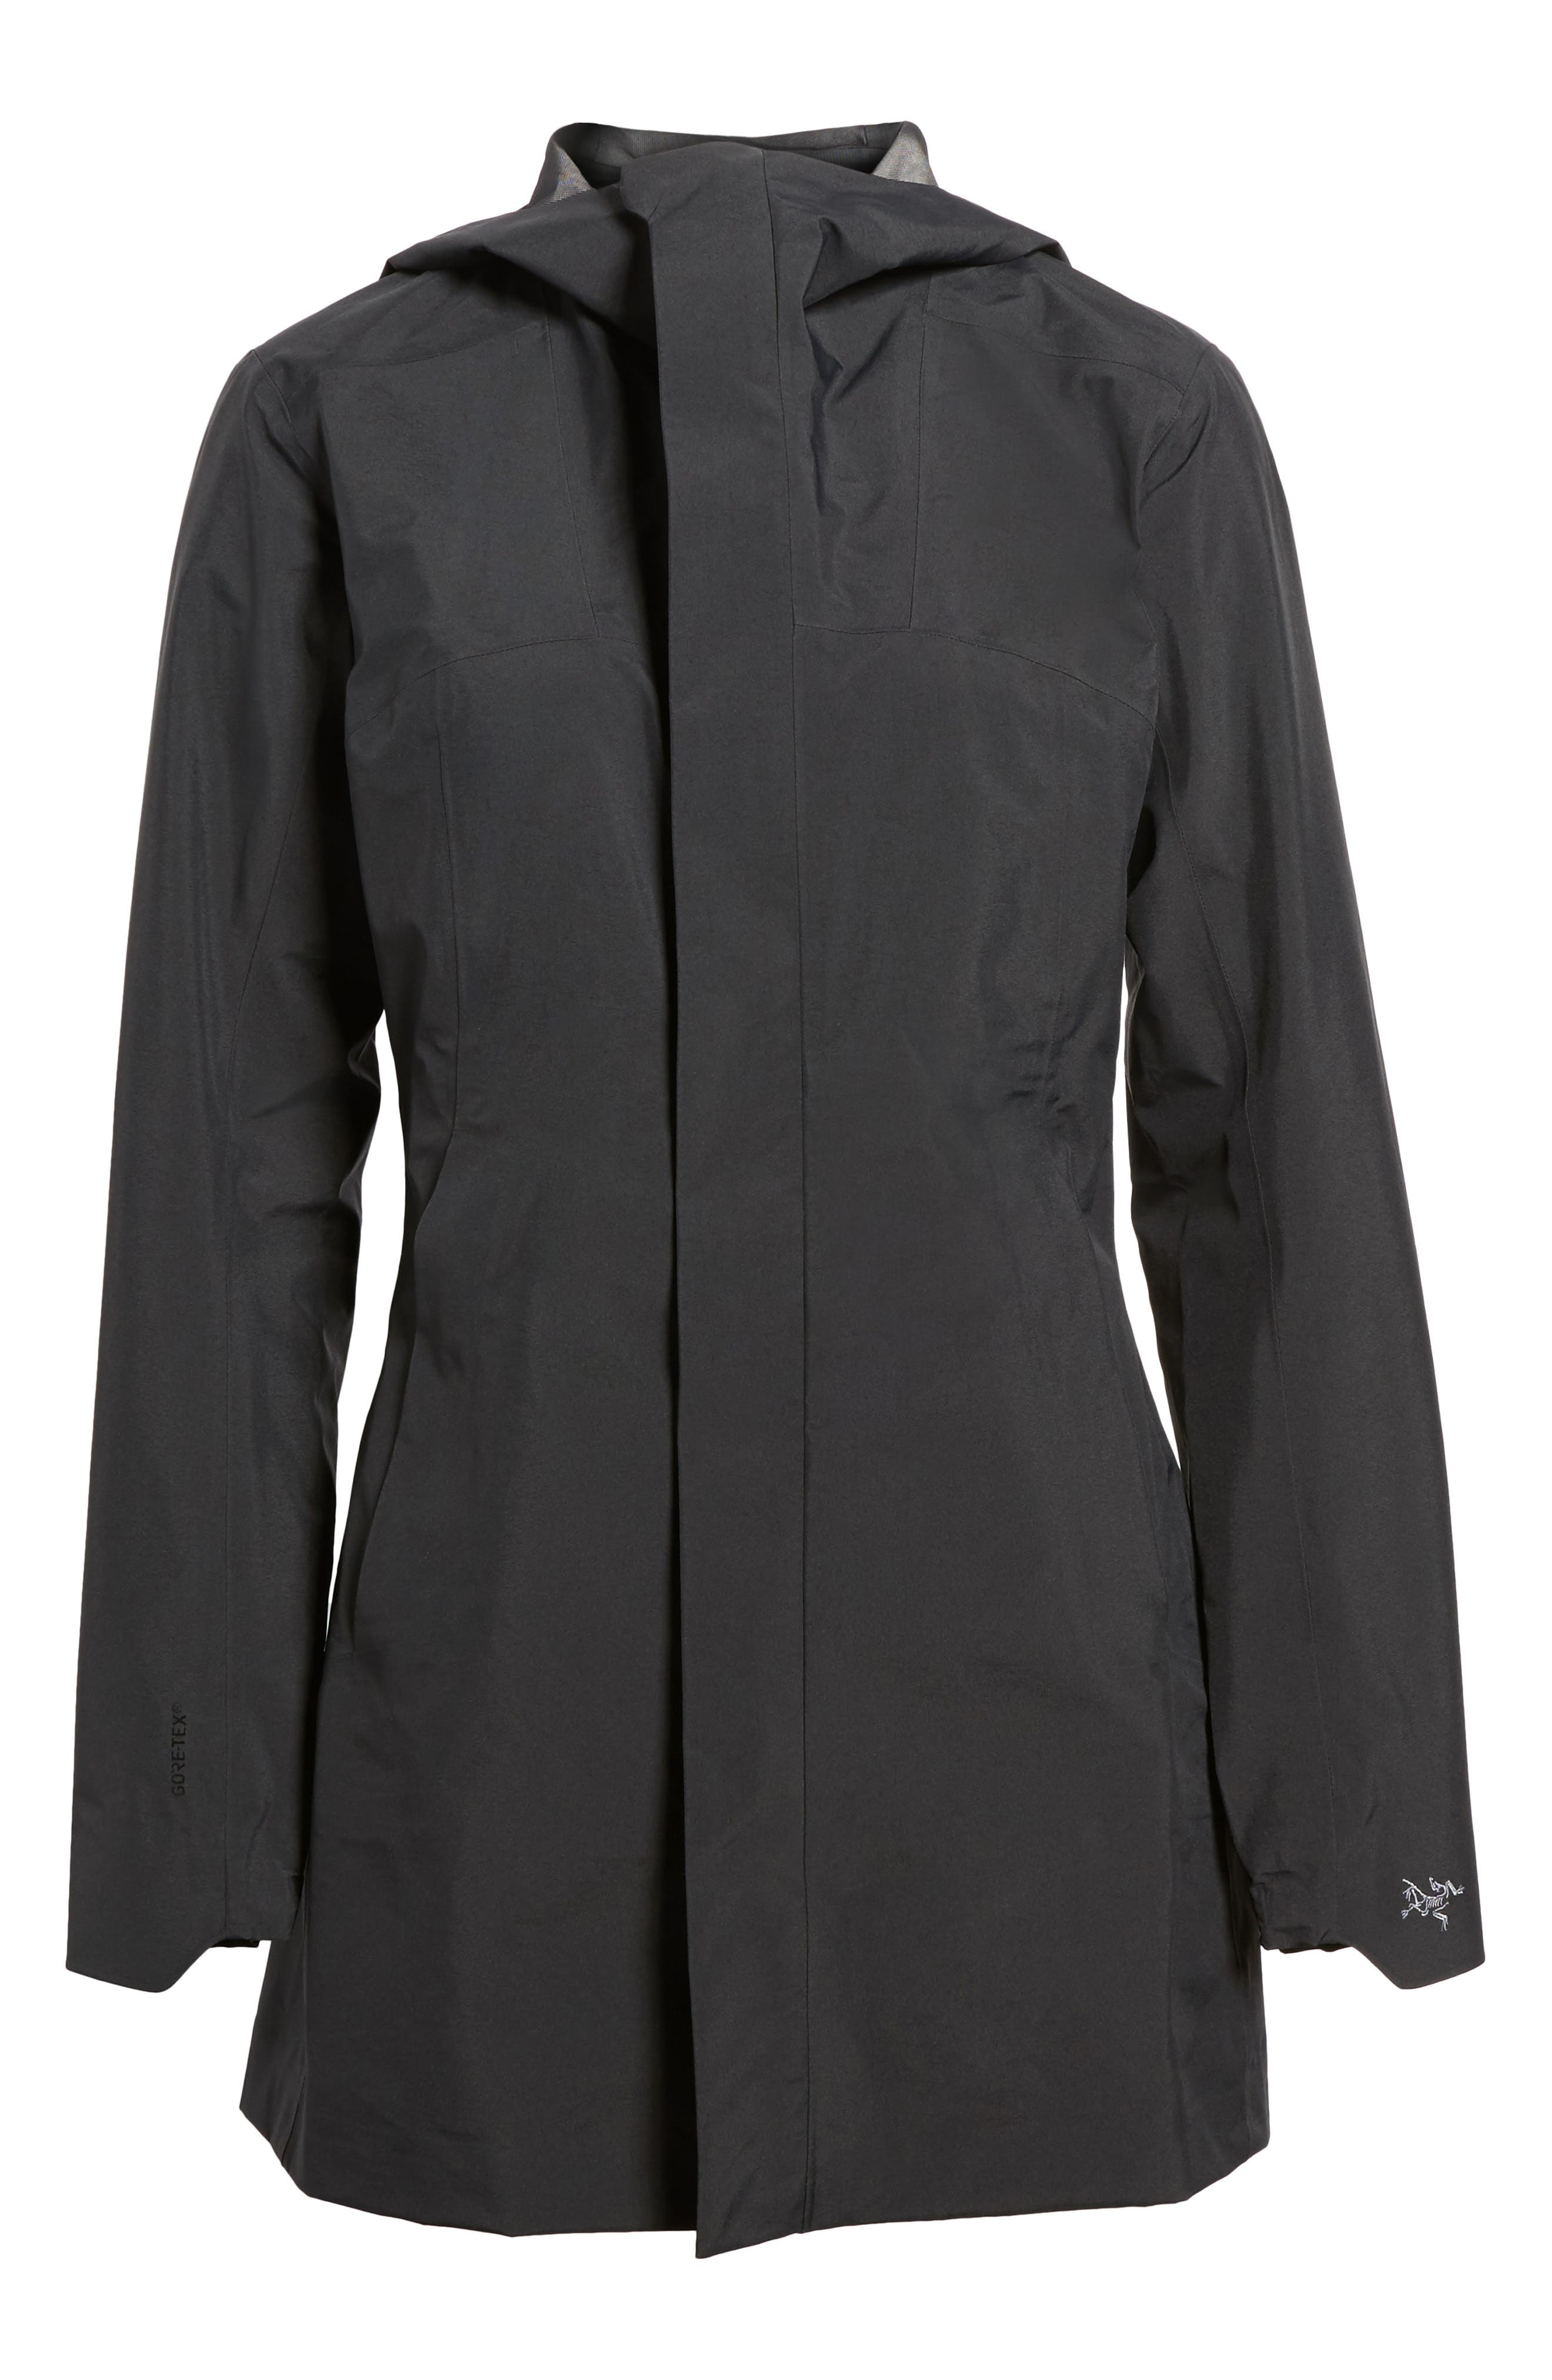 Codetta Waterproof Relaxed Fit Gore-Tex<sup>®</sup> 3L Rain Jacket,                         Main,                         color, Black